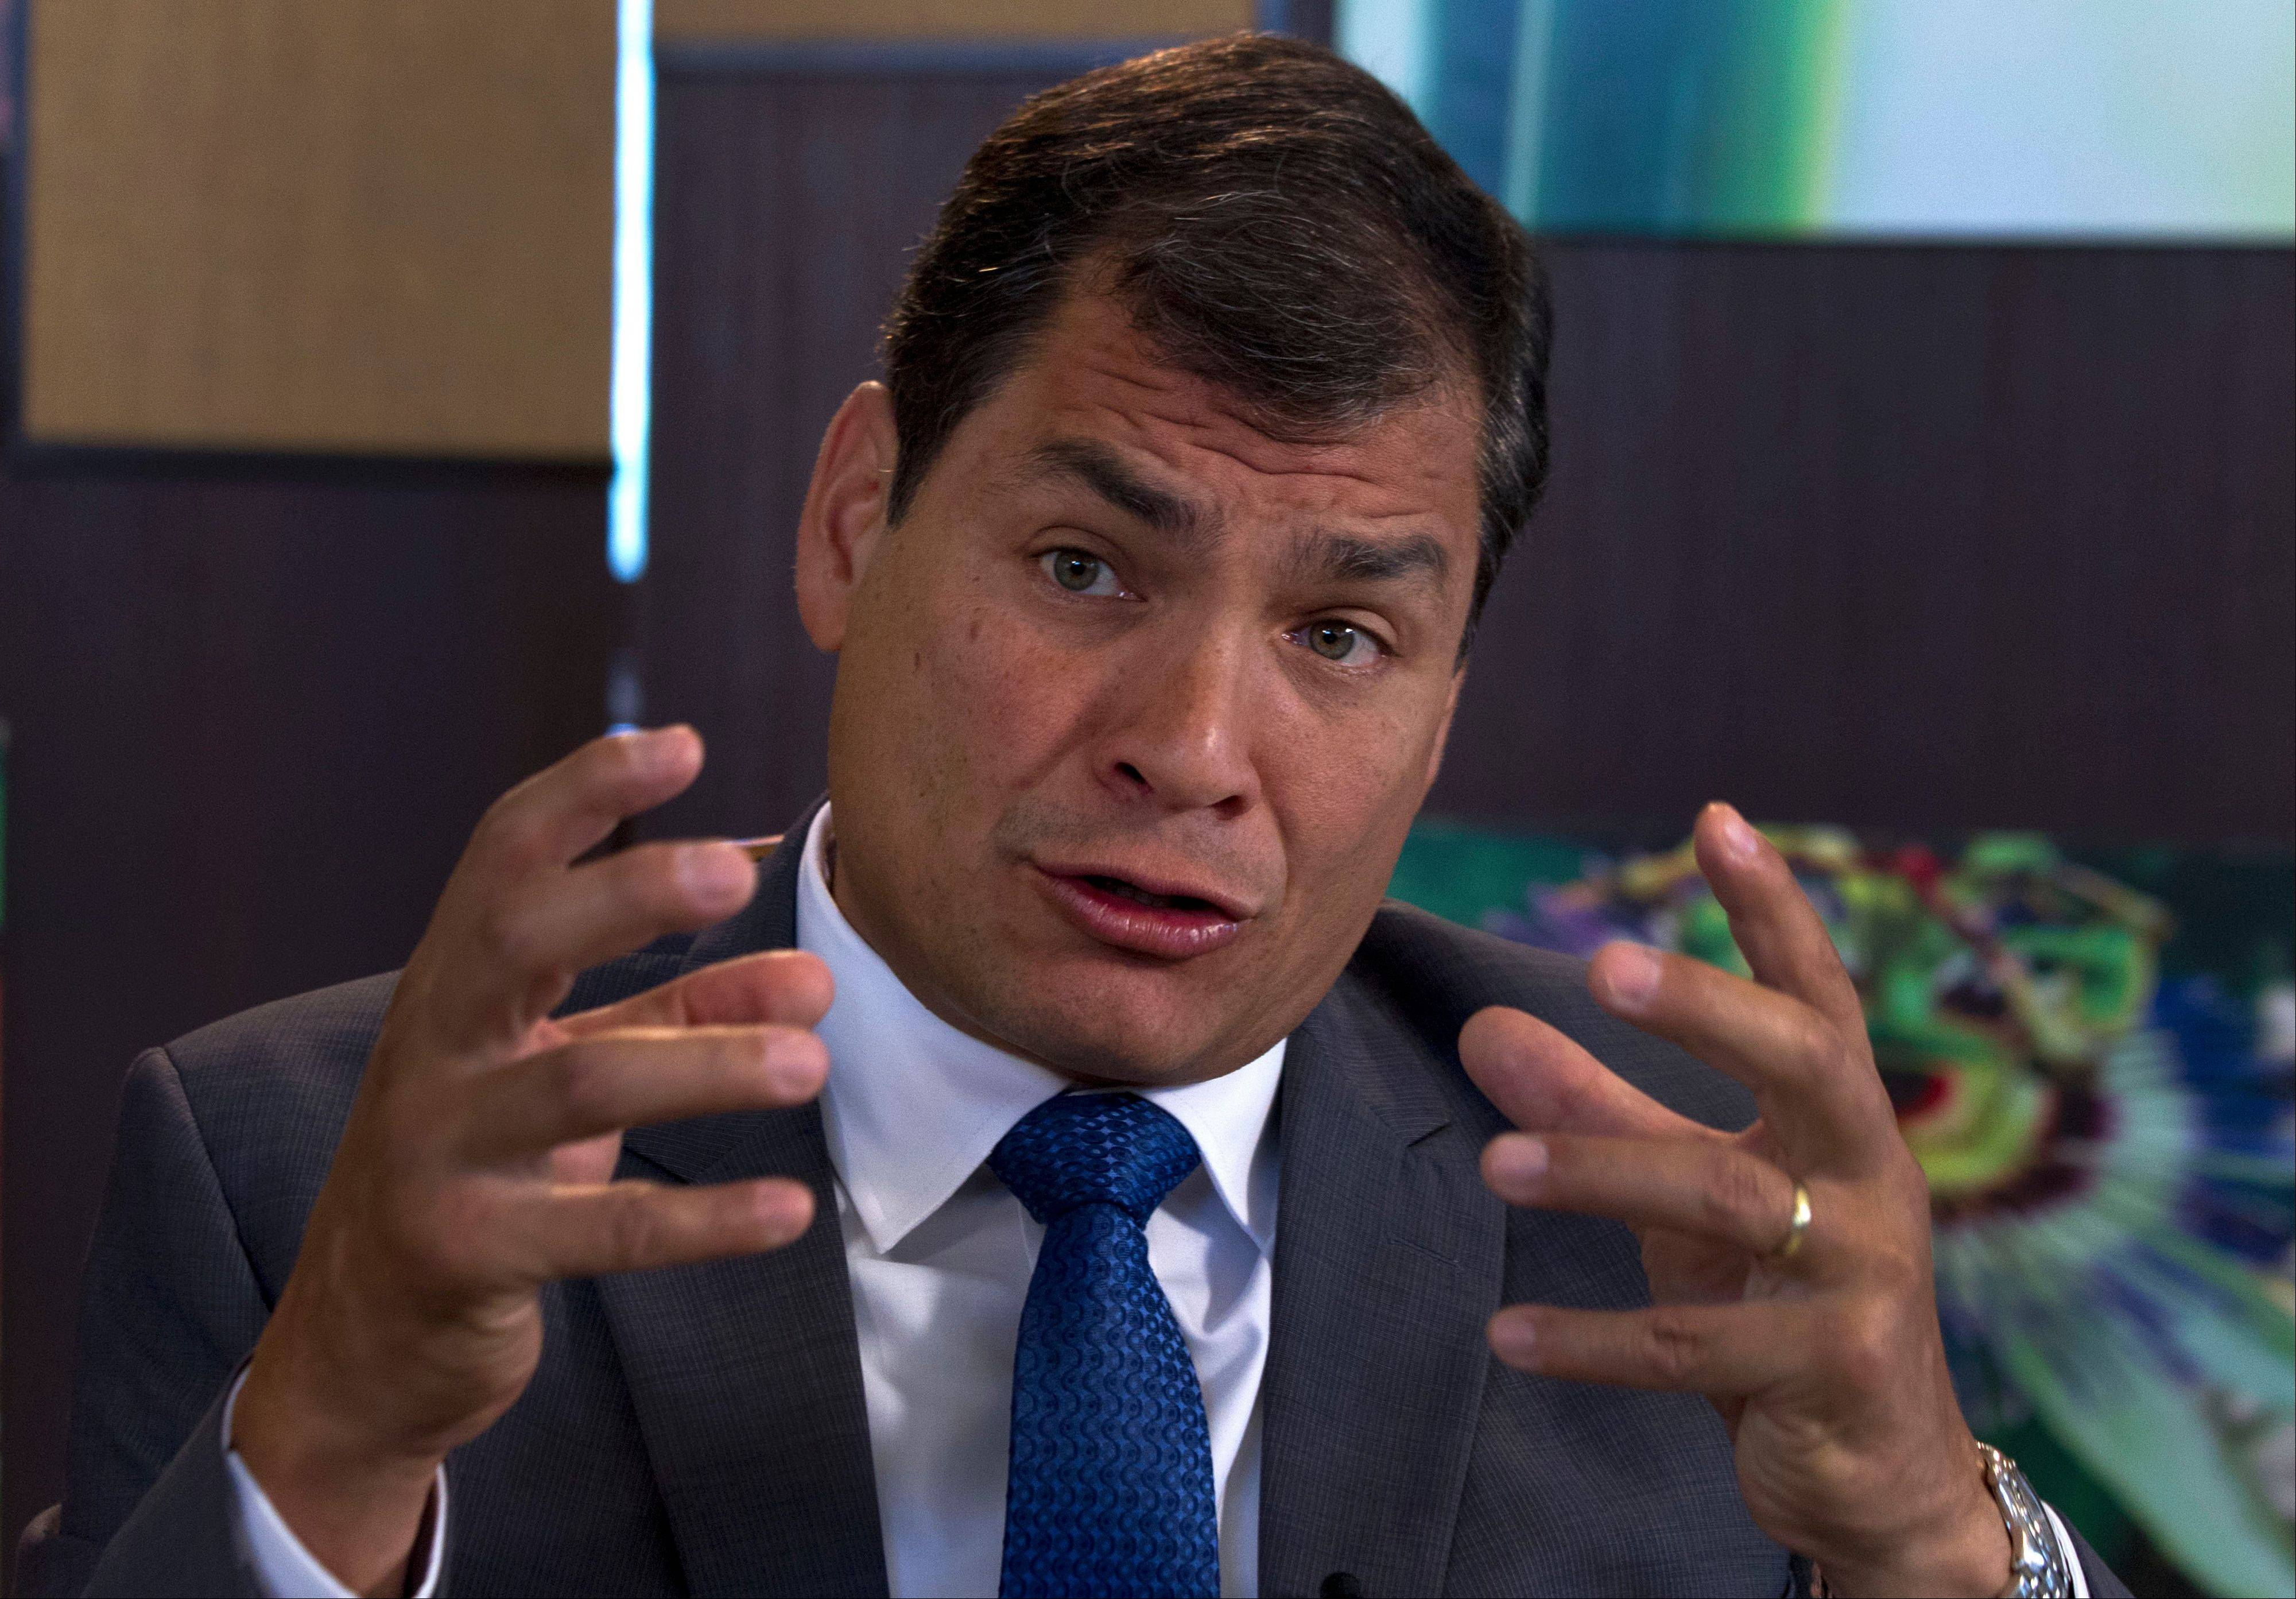 Ecuadorean President Rafael Correa says he had no idea National Security Agency leaker Edward Snowden�s intended destination was Ecuador when he fled Hong Kong for Russia last week.